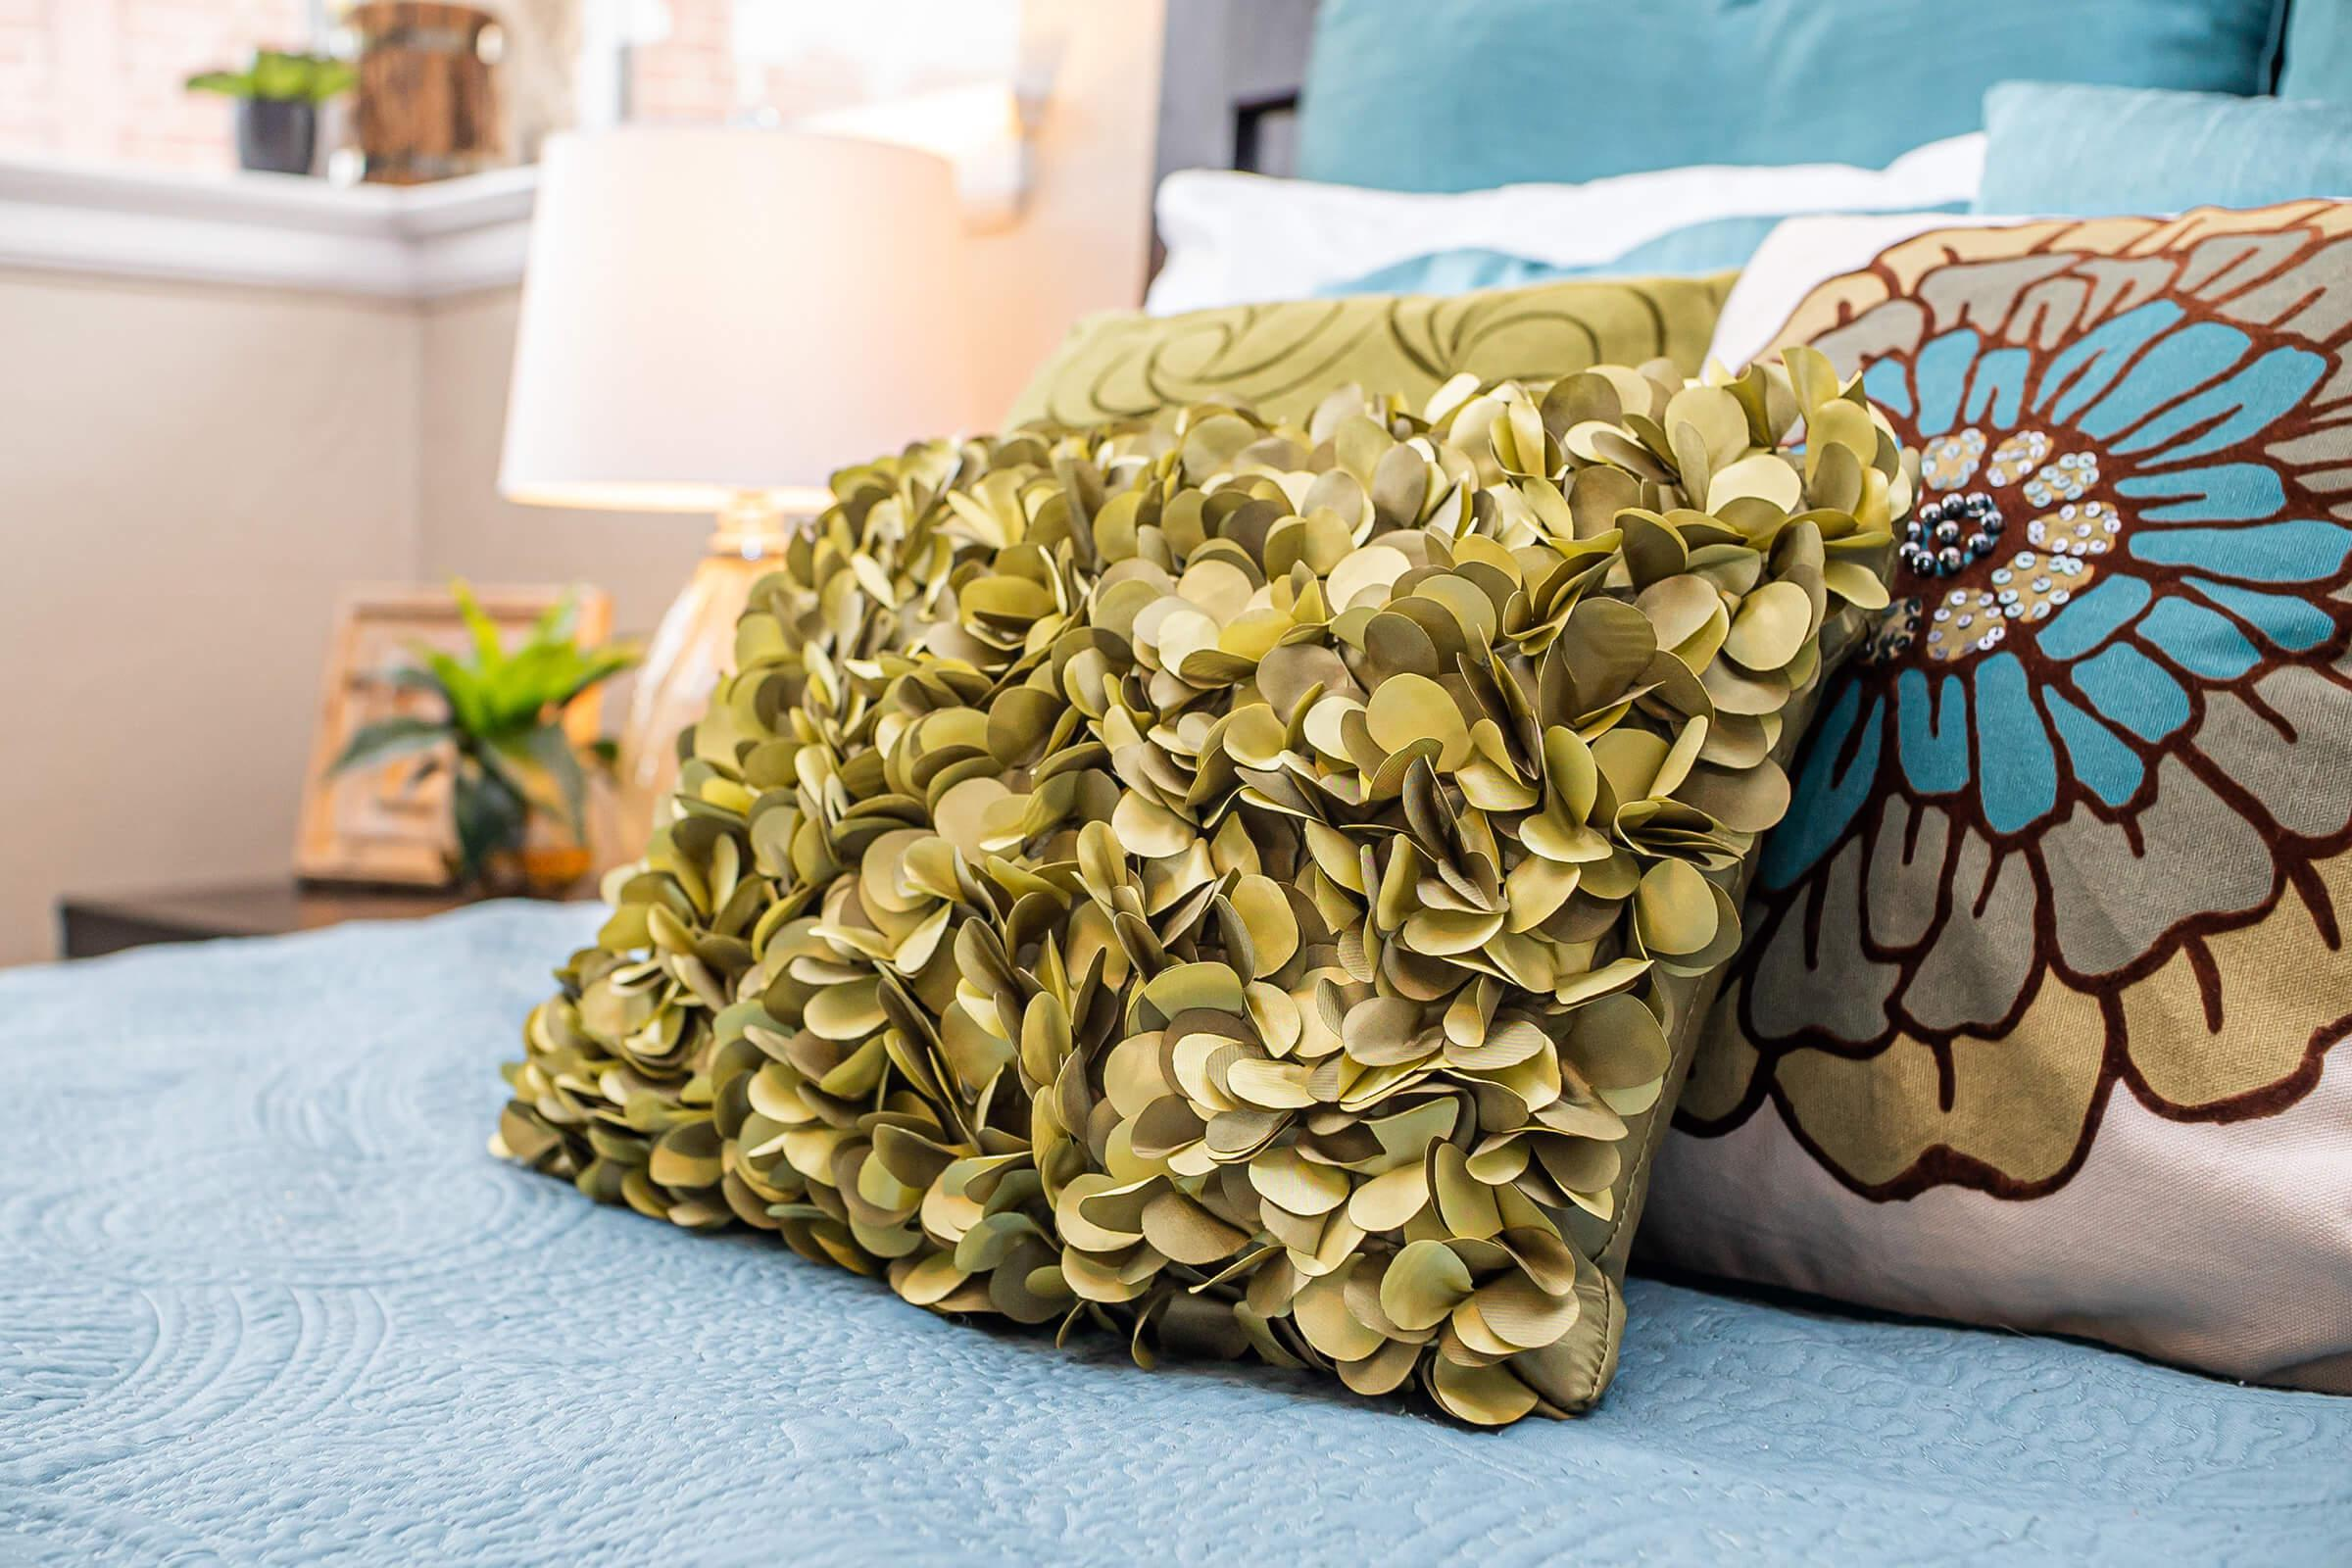 a vase of flowers sitting on a bed